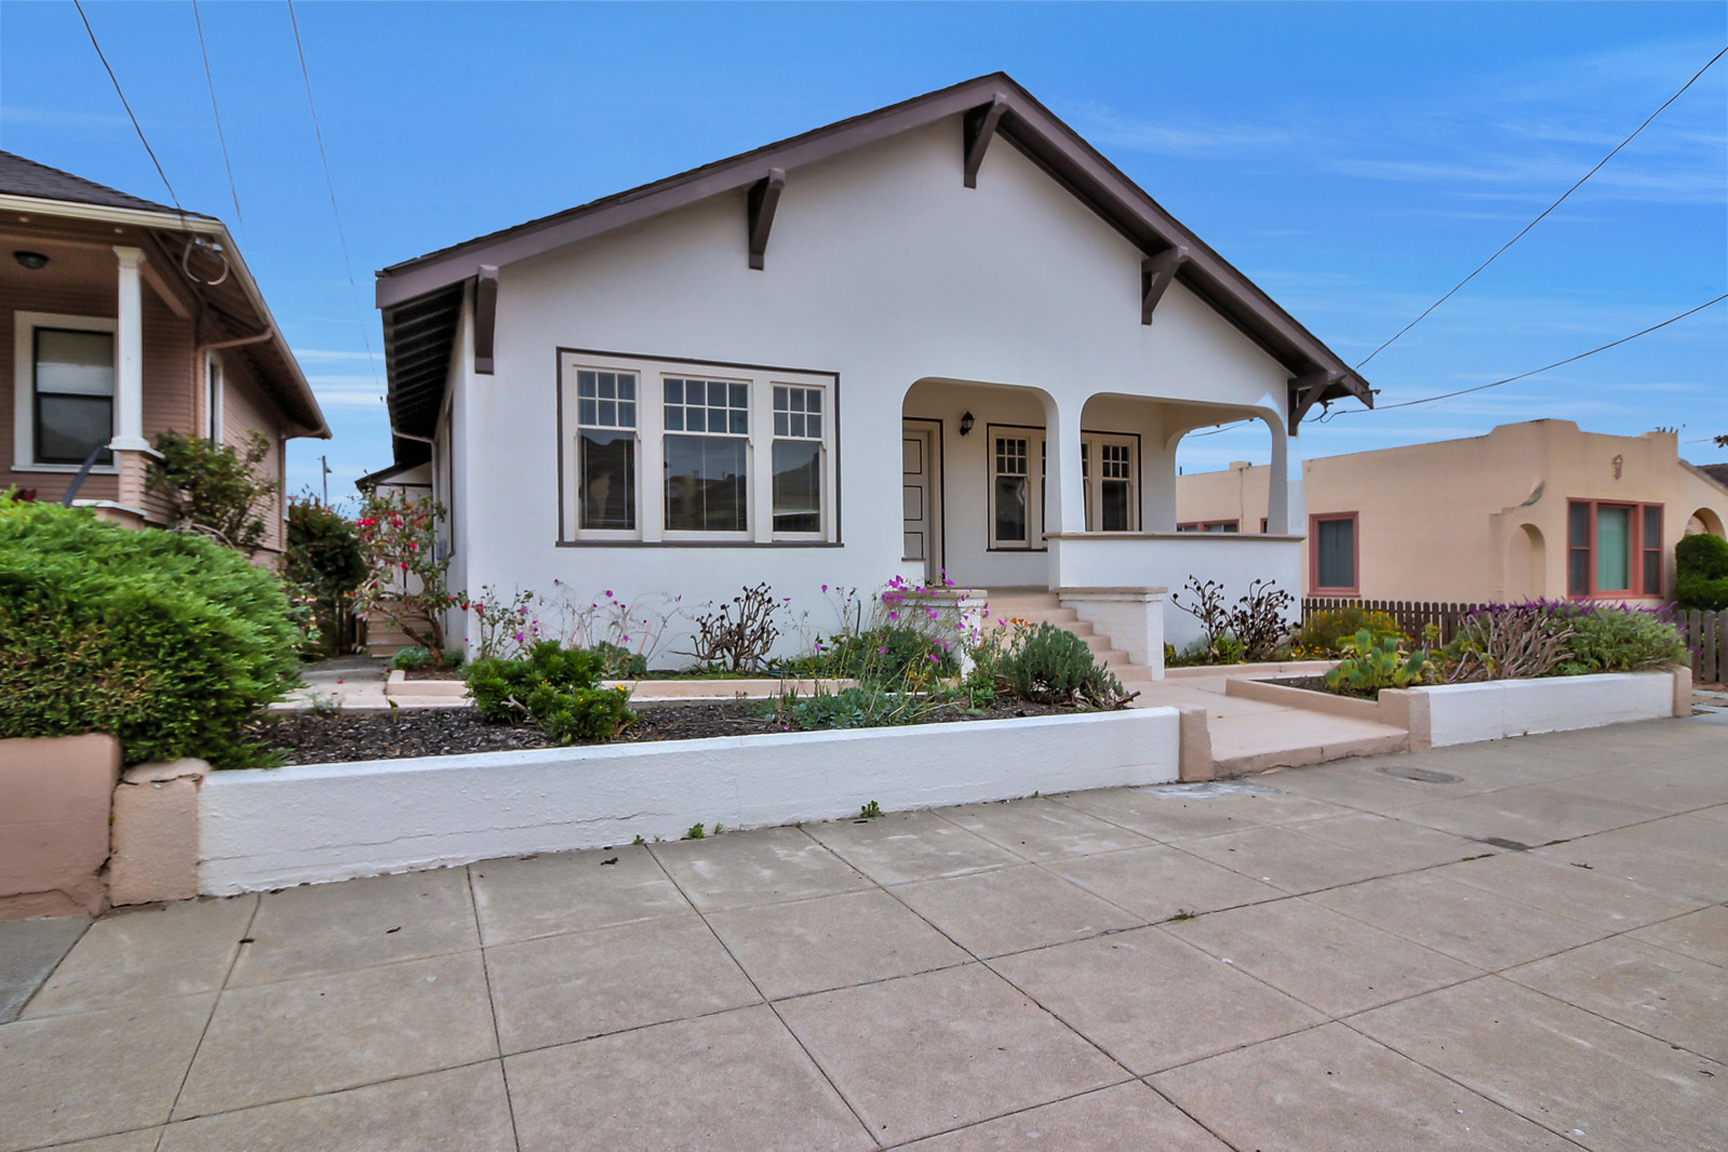 359 watson monterey ocean view home for sale with for Homes for sale with guest house